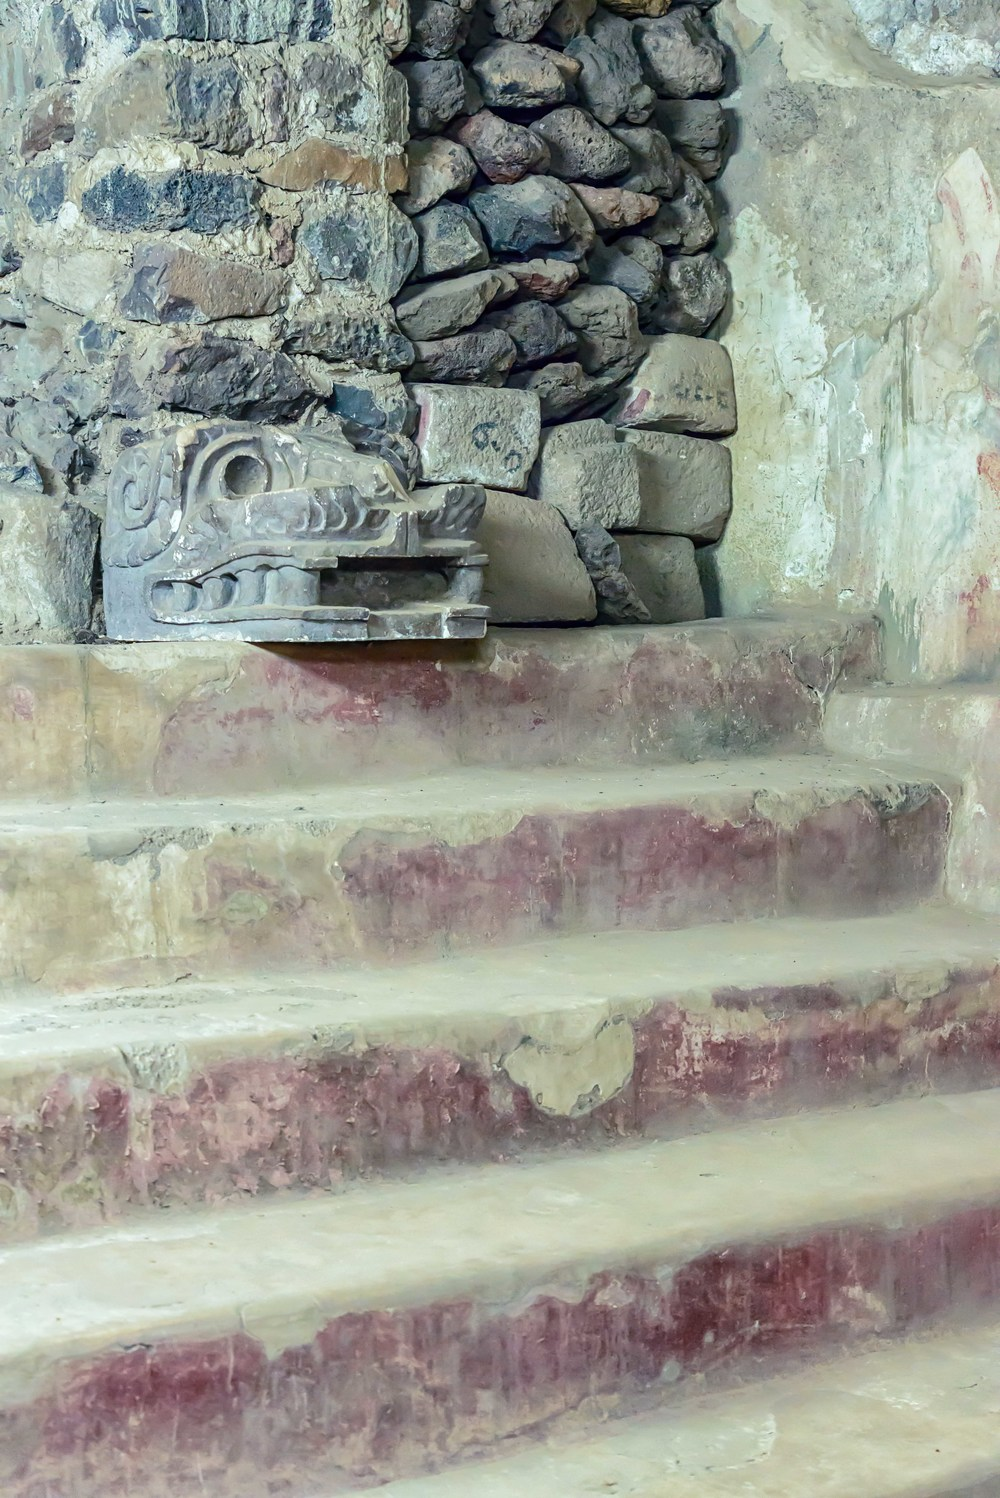 Stairway to the temple of Feathered Conch Shells, under the Palace of Quetzalpapalotl, at Teotihuacan.